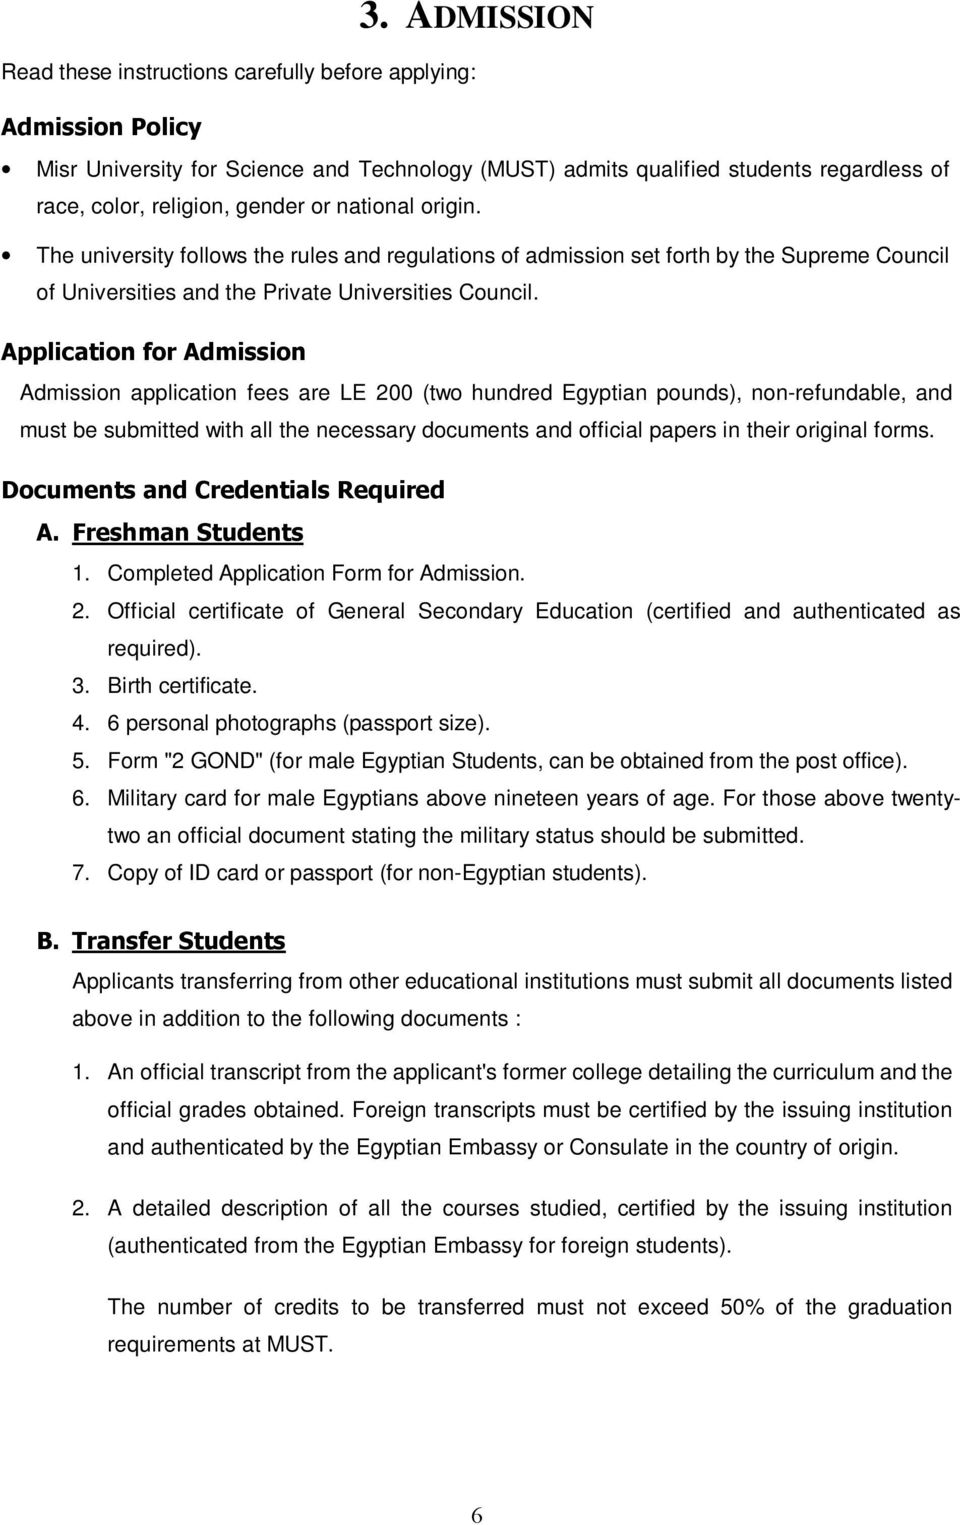 Application for Admission Admission application fees are LE 200 (two hundred Egyptian pounds), non-refundable, and must be submitted with all the necessary documents and official papers in their